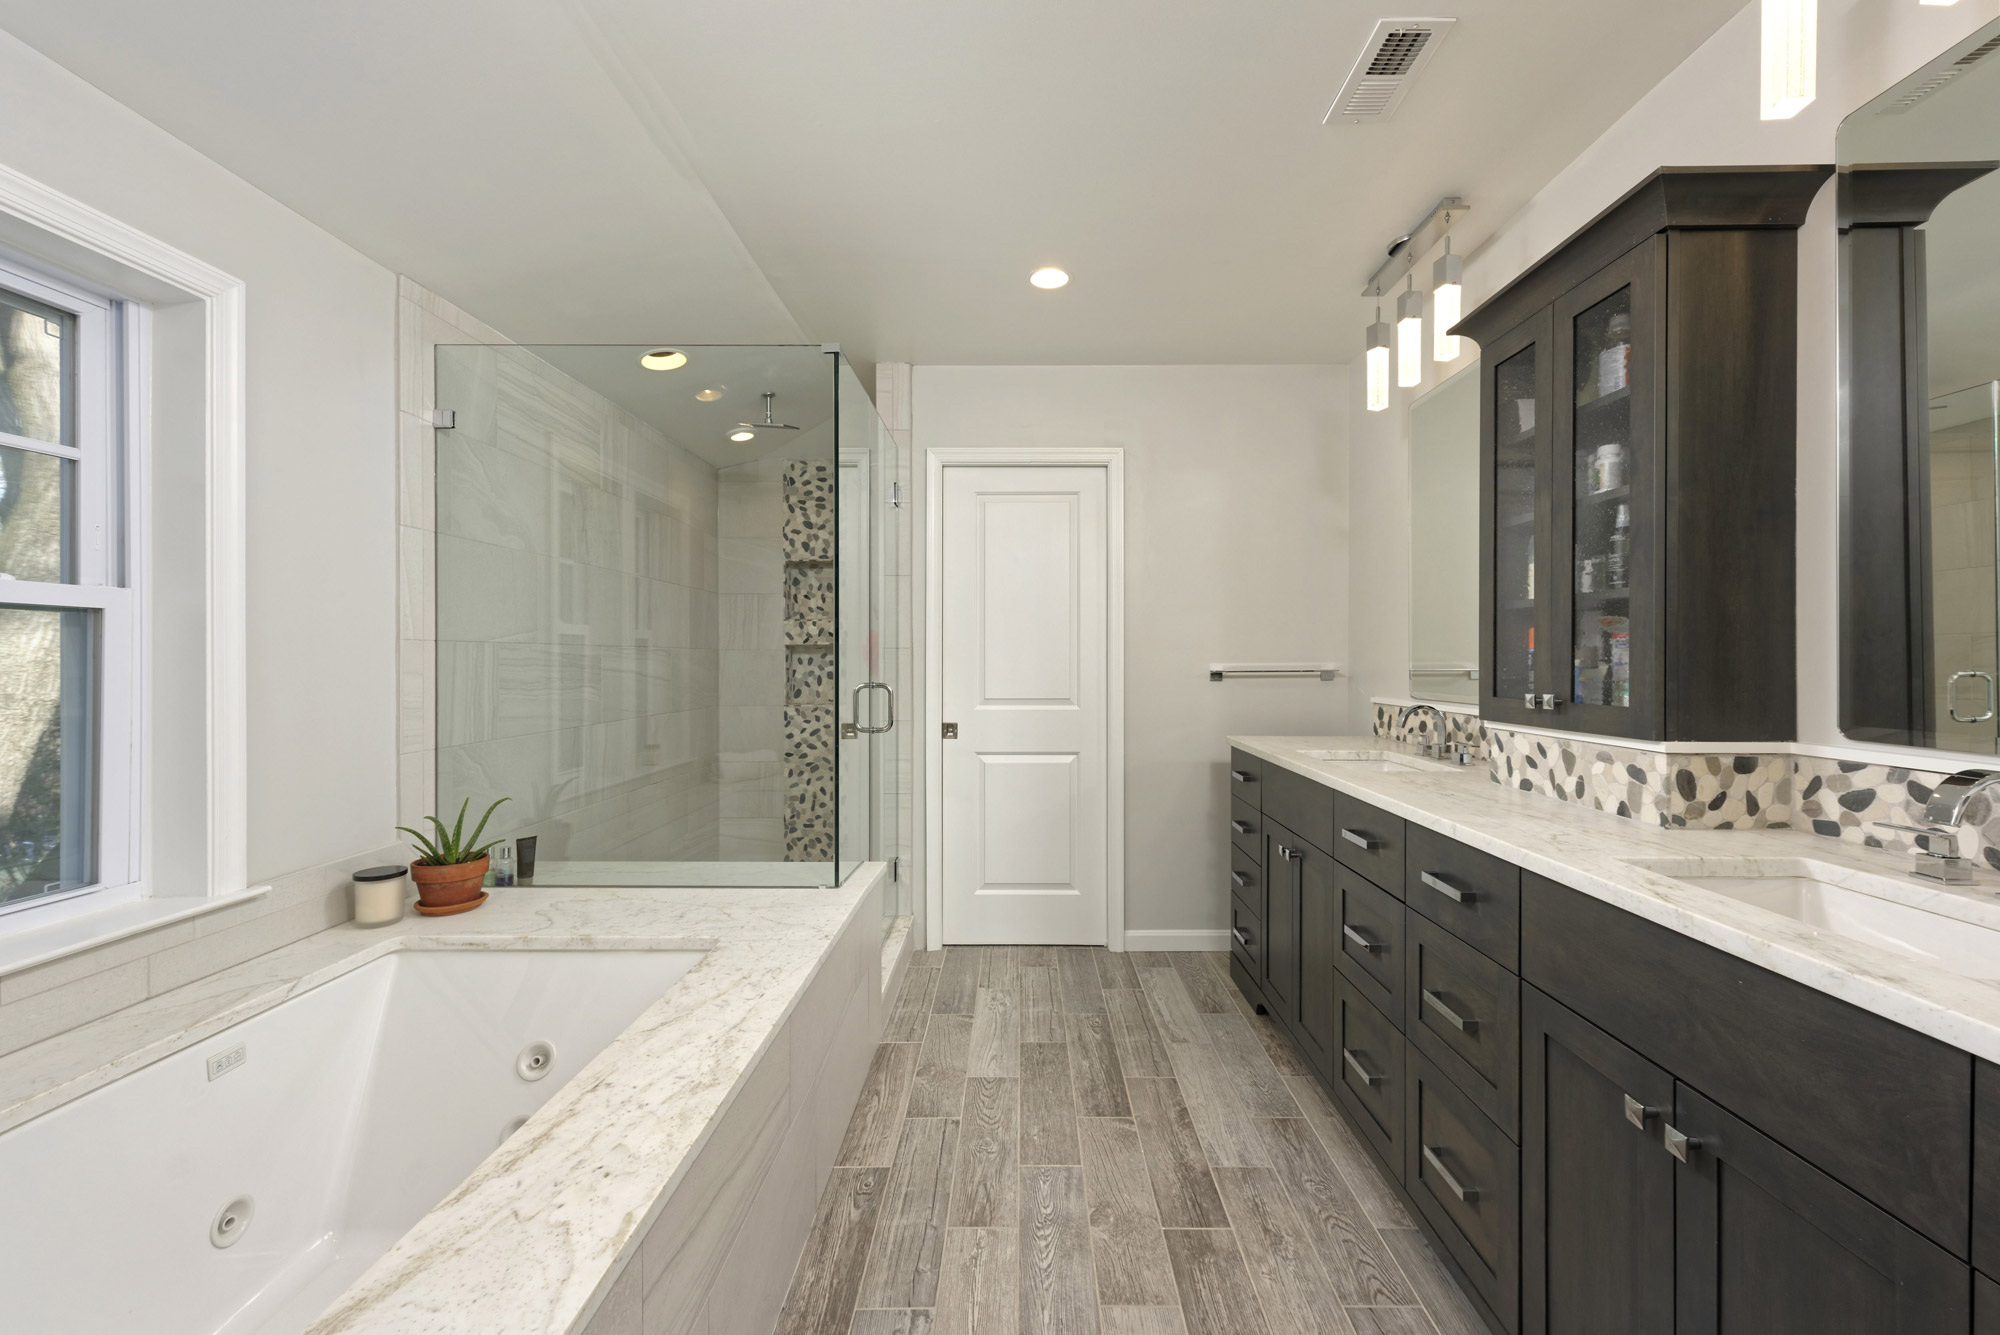 Beautiful Bathroom Remodels In An Alexandria VA Home - Bathroom renovation alexandria va